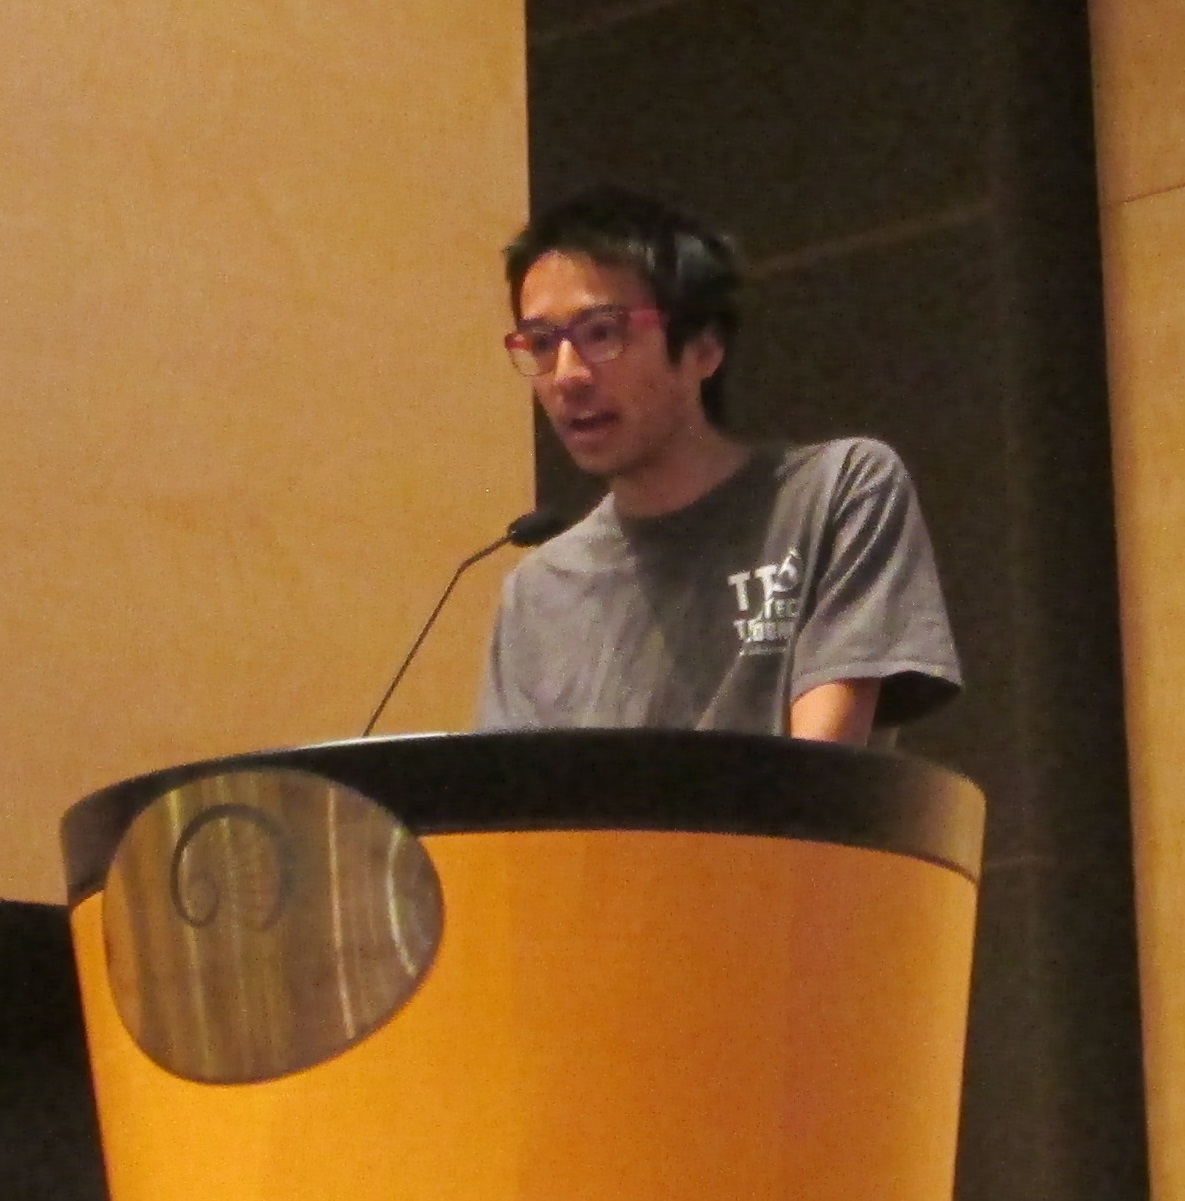 Announcing TeenTechSF Civic Hackathon: Marc Robert Wong, TTSF Founder and Global Chair